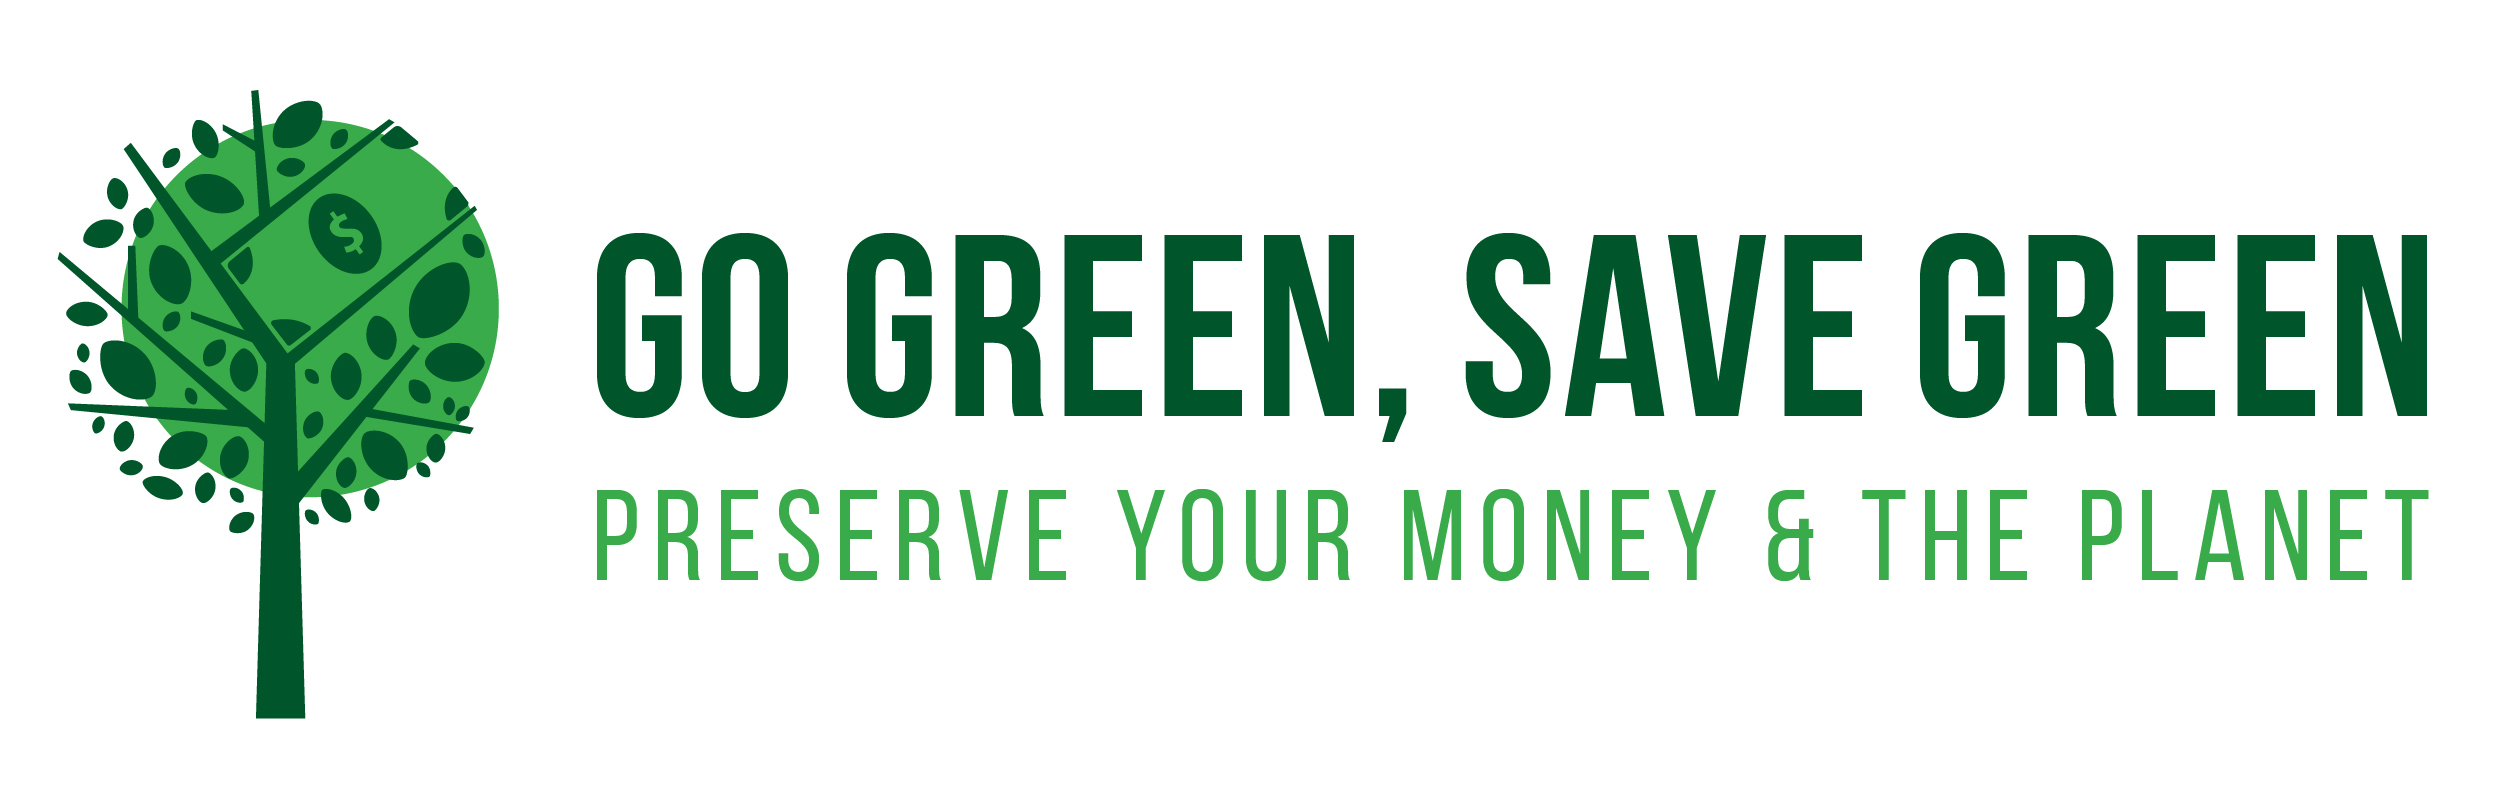 Go Green Save Green_v2_website header_4.19-01.jpg